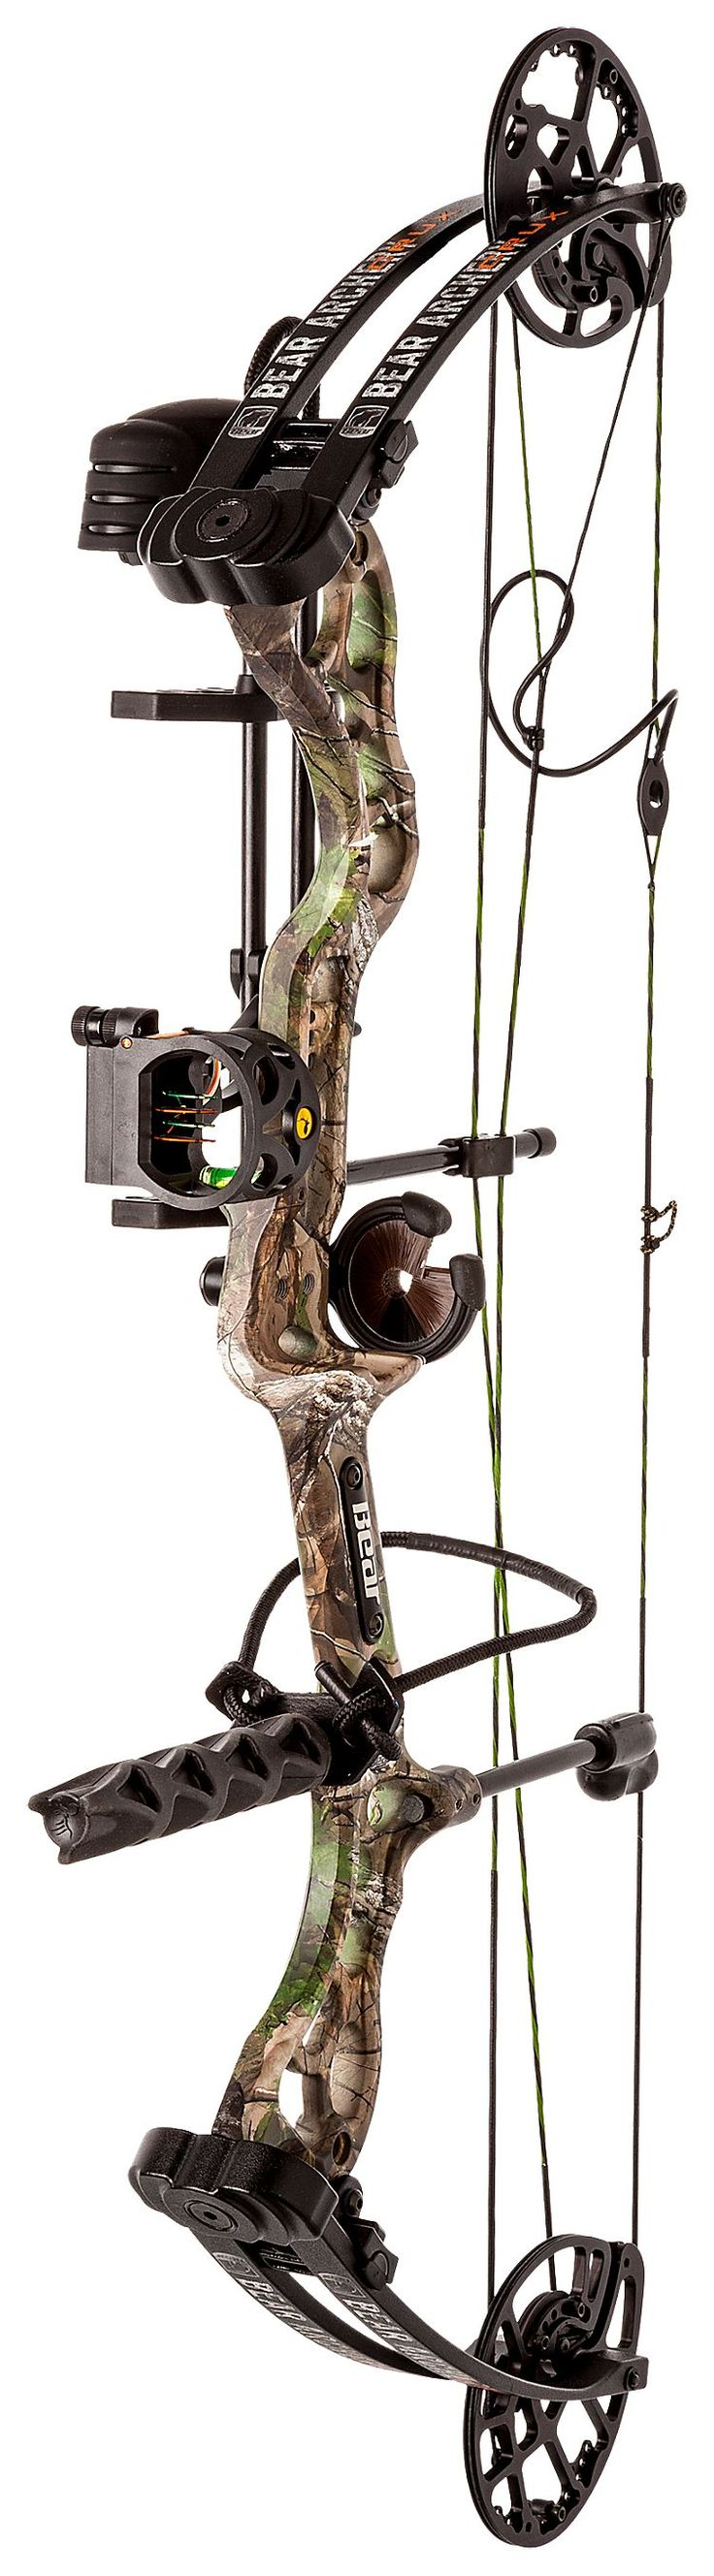 Bear Archery Crux RTH (Ready To Hunt) Compound Bow Package | Bass Pro Shops